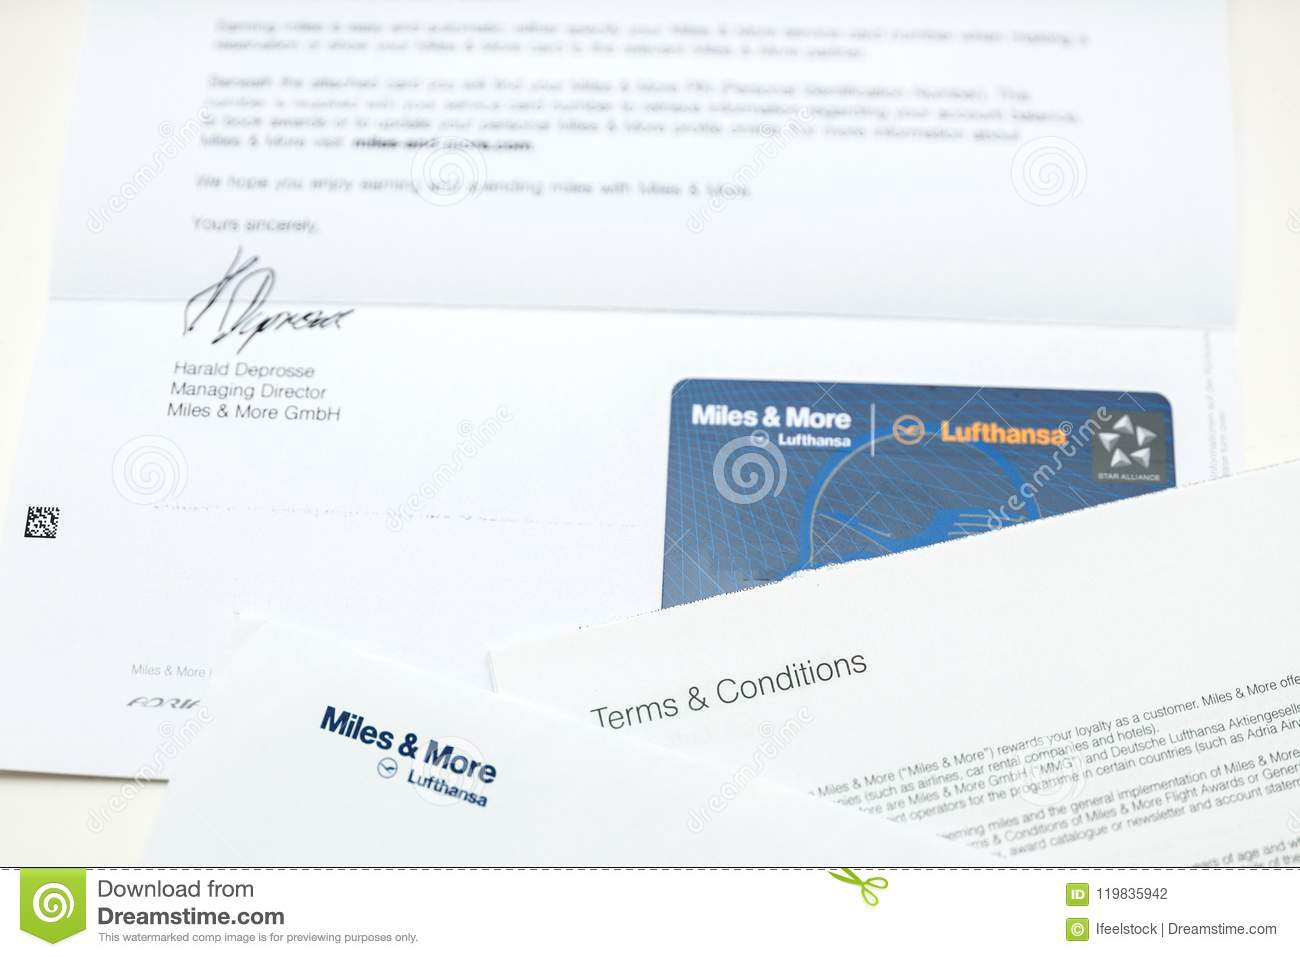 Lufthansa Miles And More Karte.Miles And More Card Point Card From Lufthansa Editorial